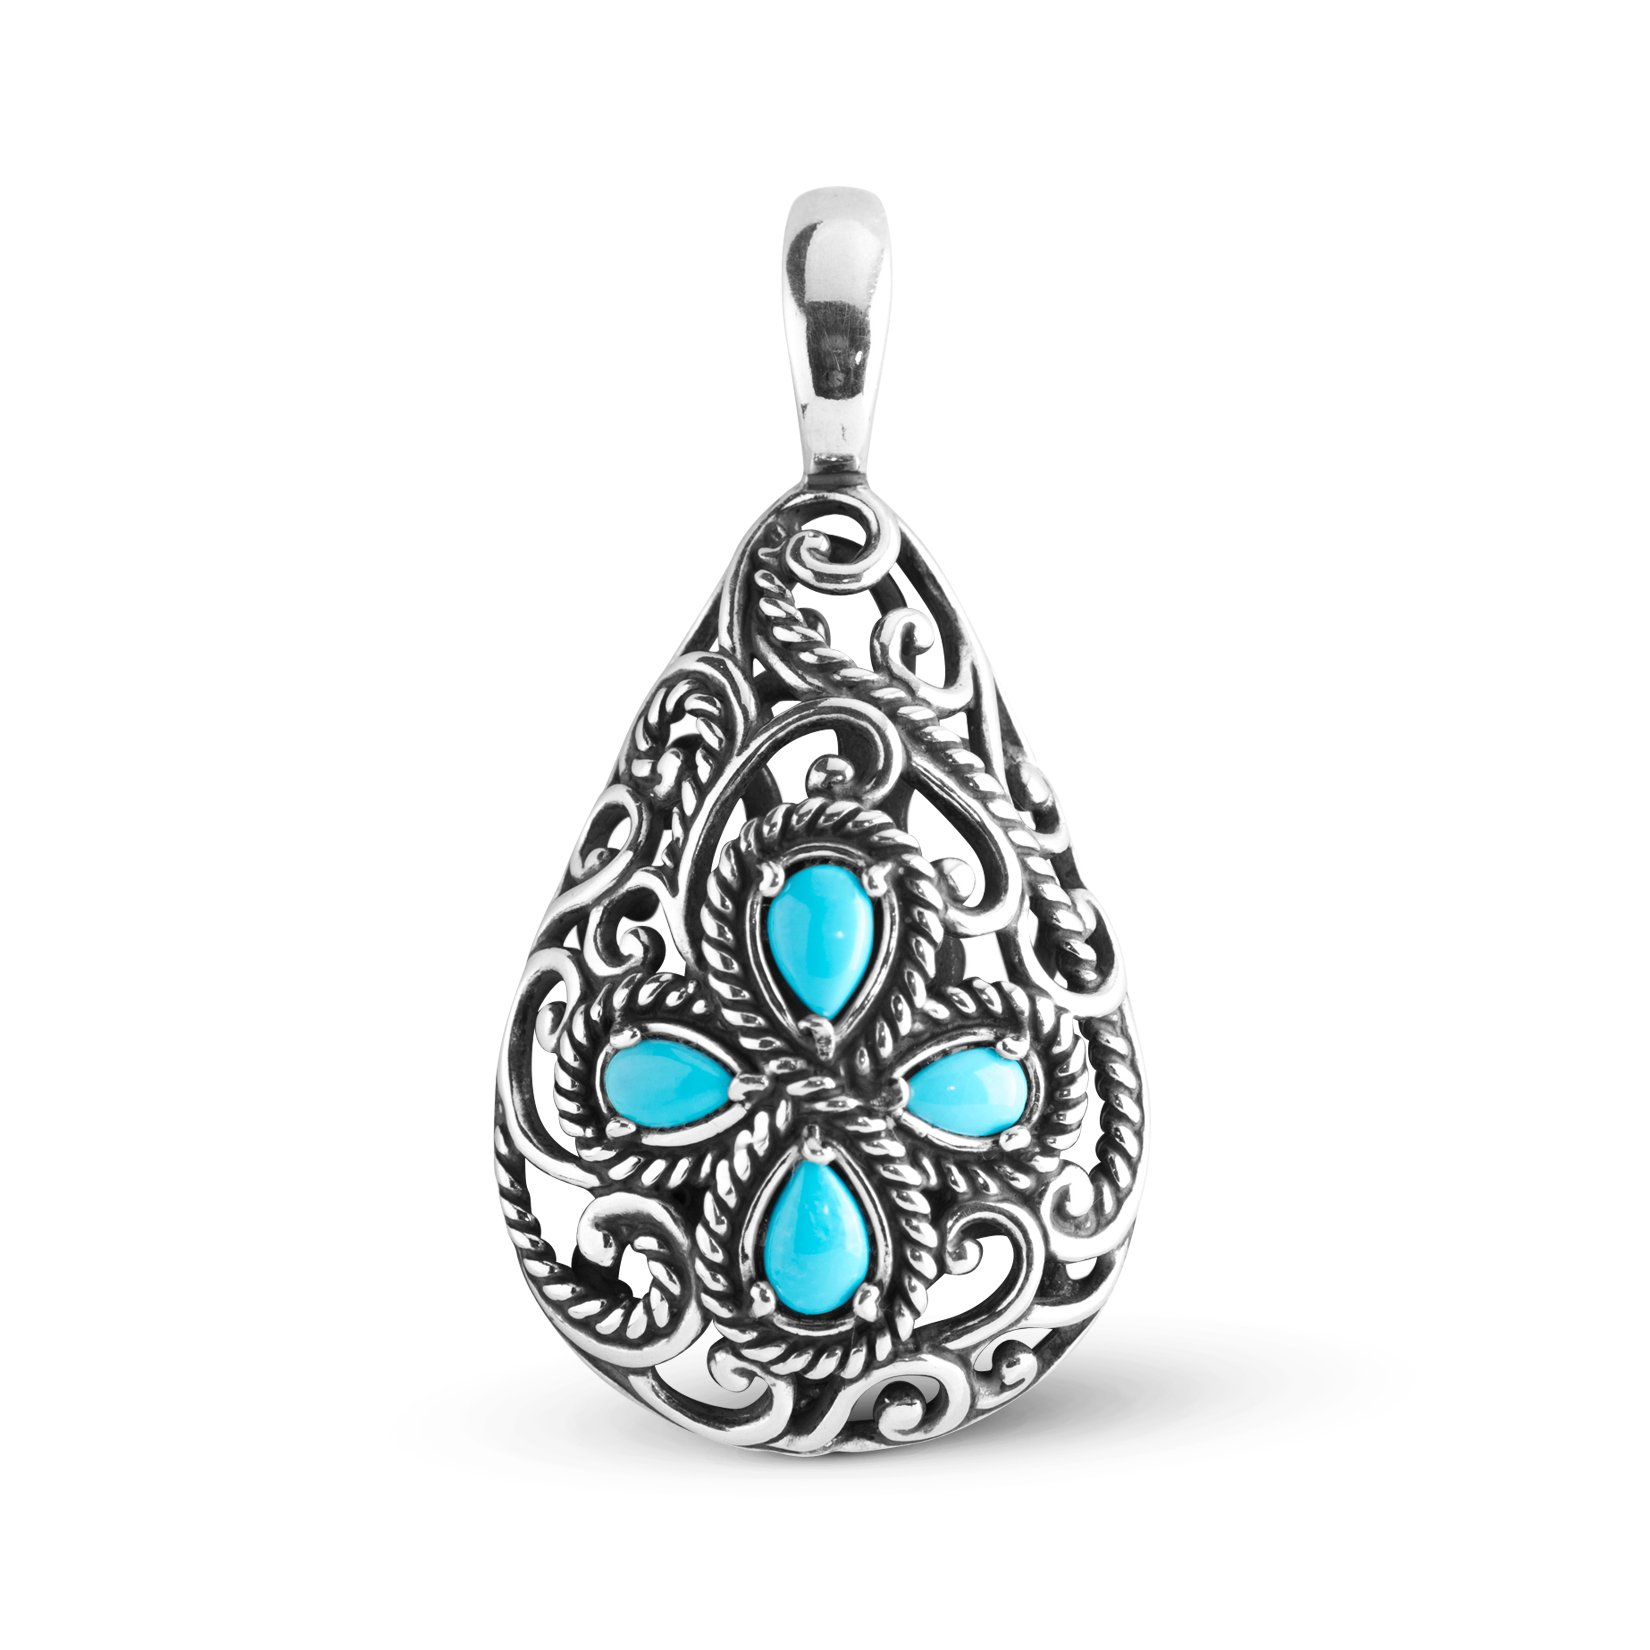 Carolyn Pollack Sterling Silver Sleeping Beauty Turquoise Pendant Enhancer by Carolyn Pollack